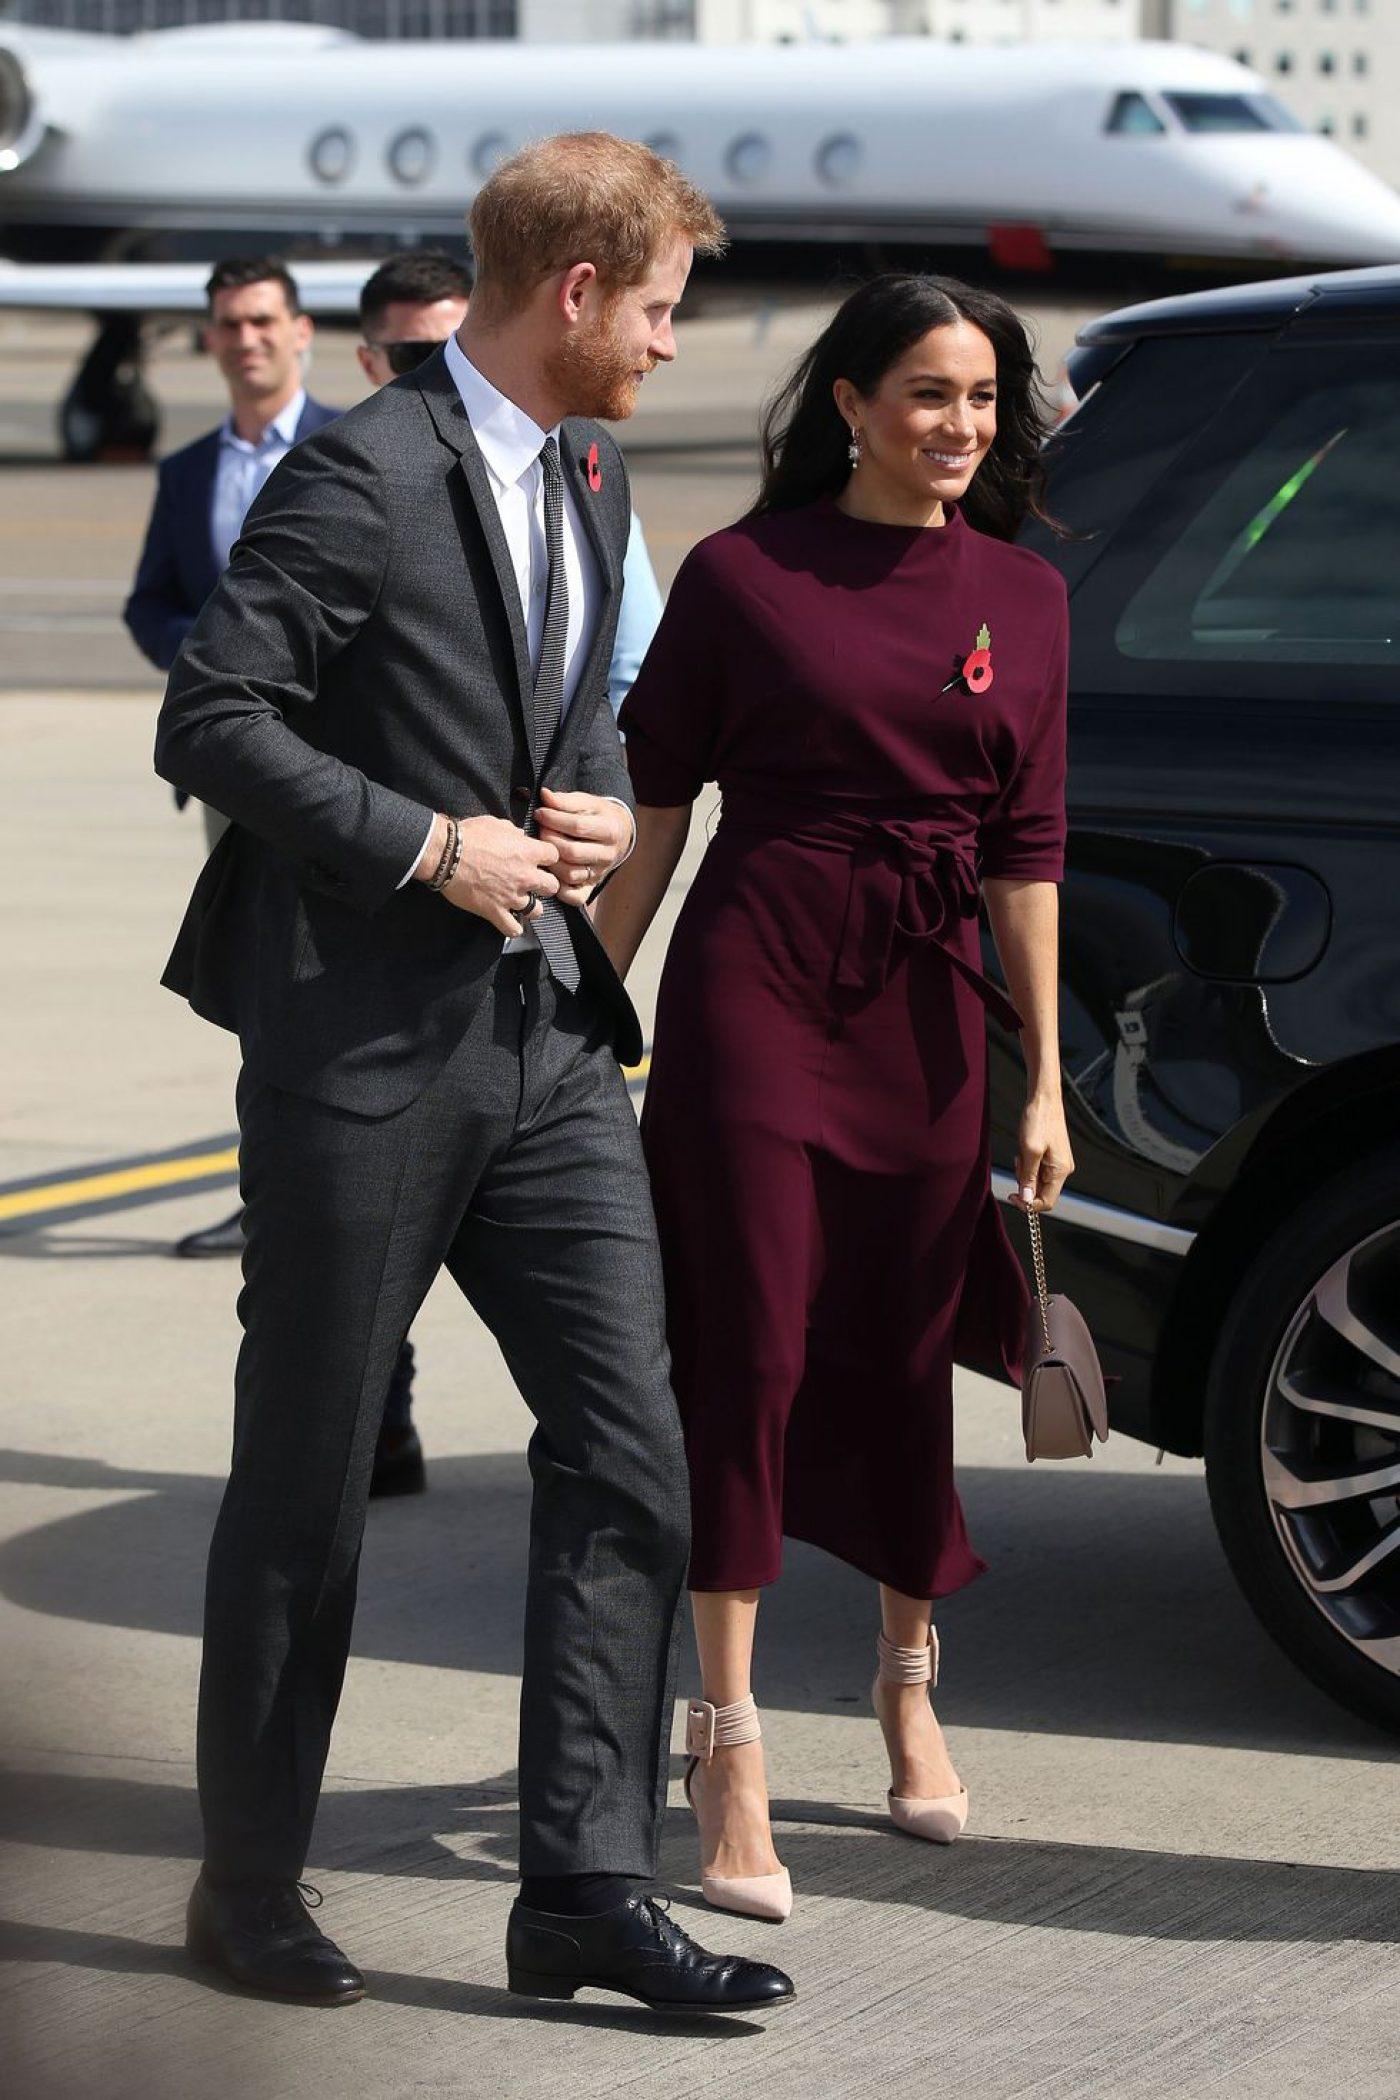 Meghan-Markle-Royal-Tour-Style-028